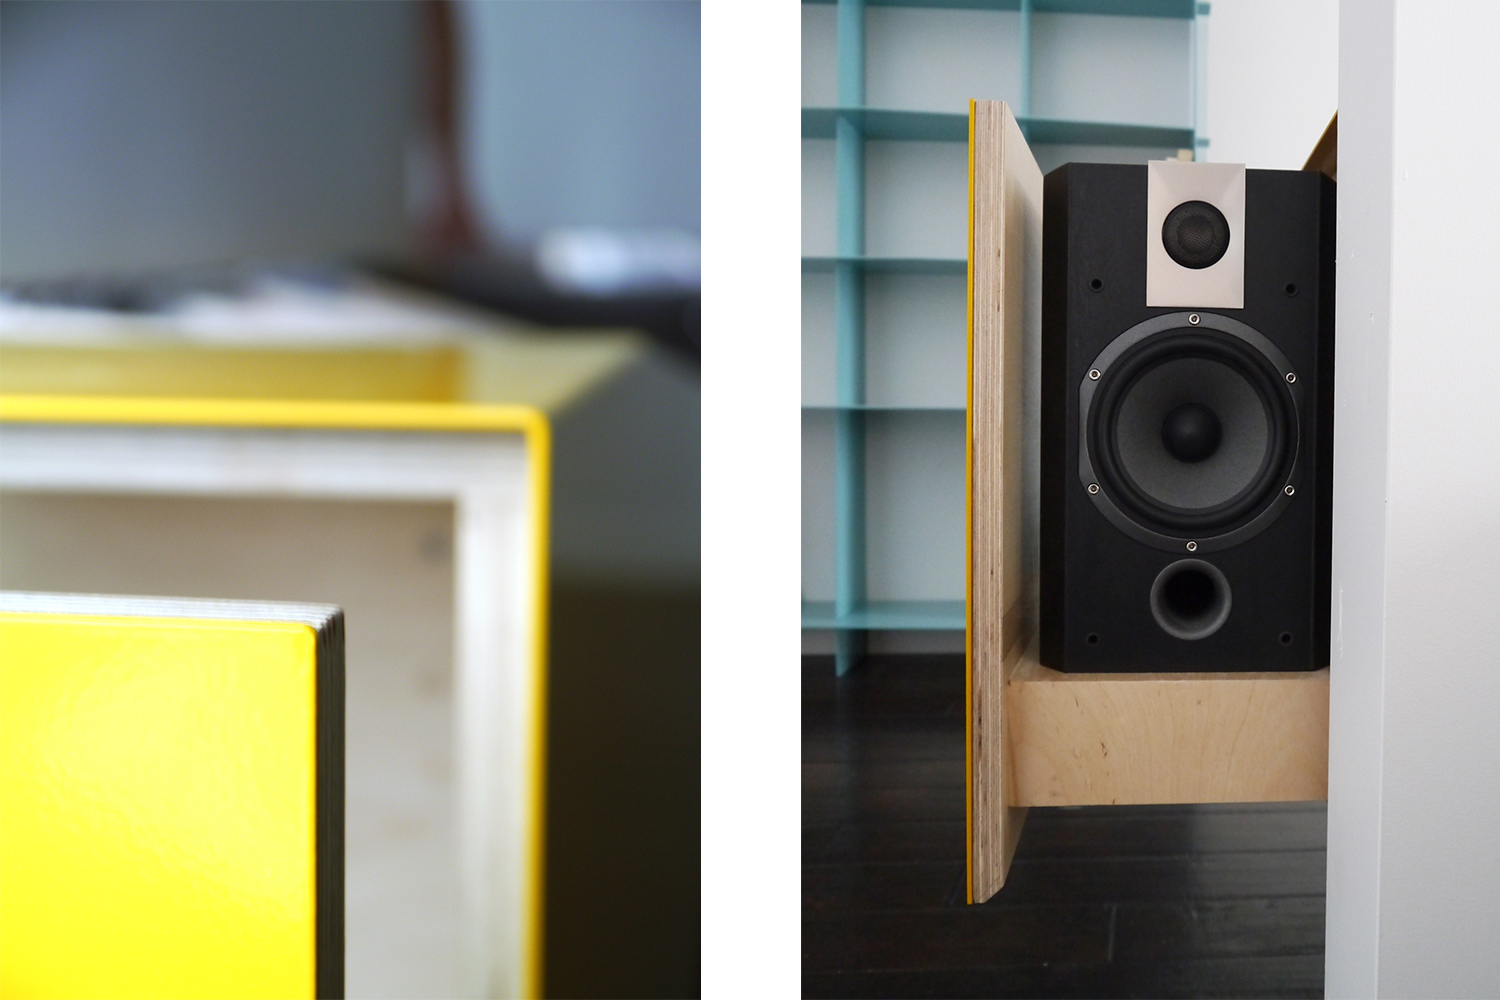 Custom audio cabinet for storing vinyl records. Drawer hiding the speakers. Glossy yellow lacquer finish